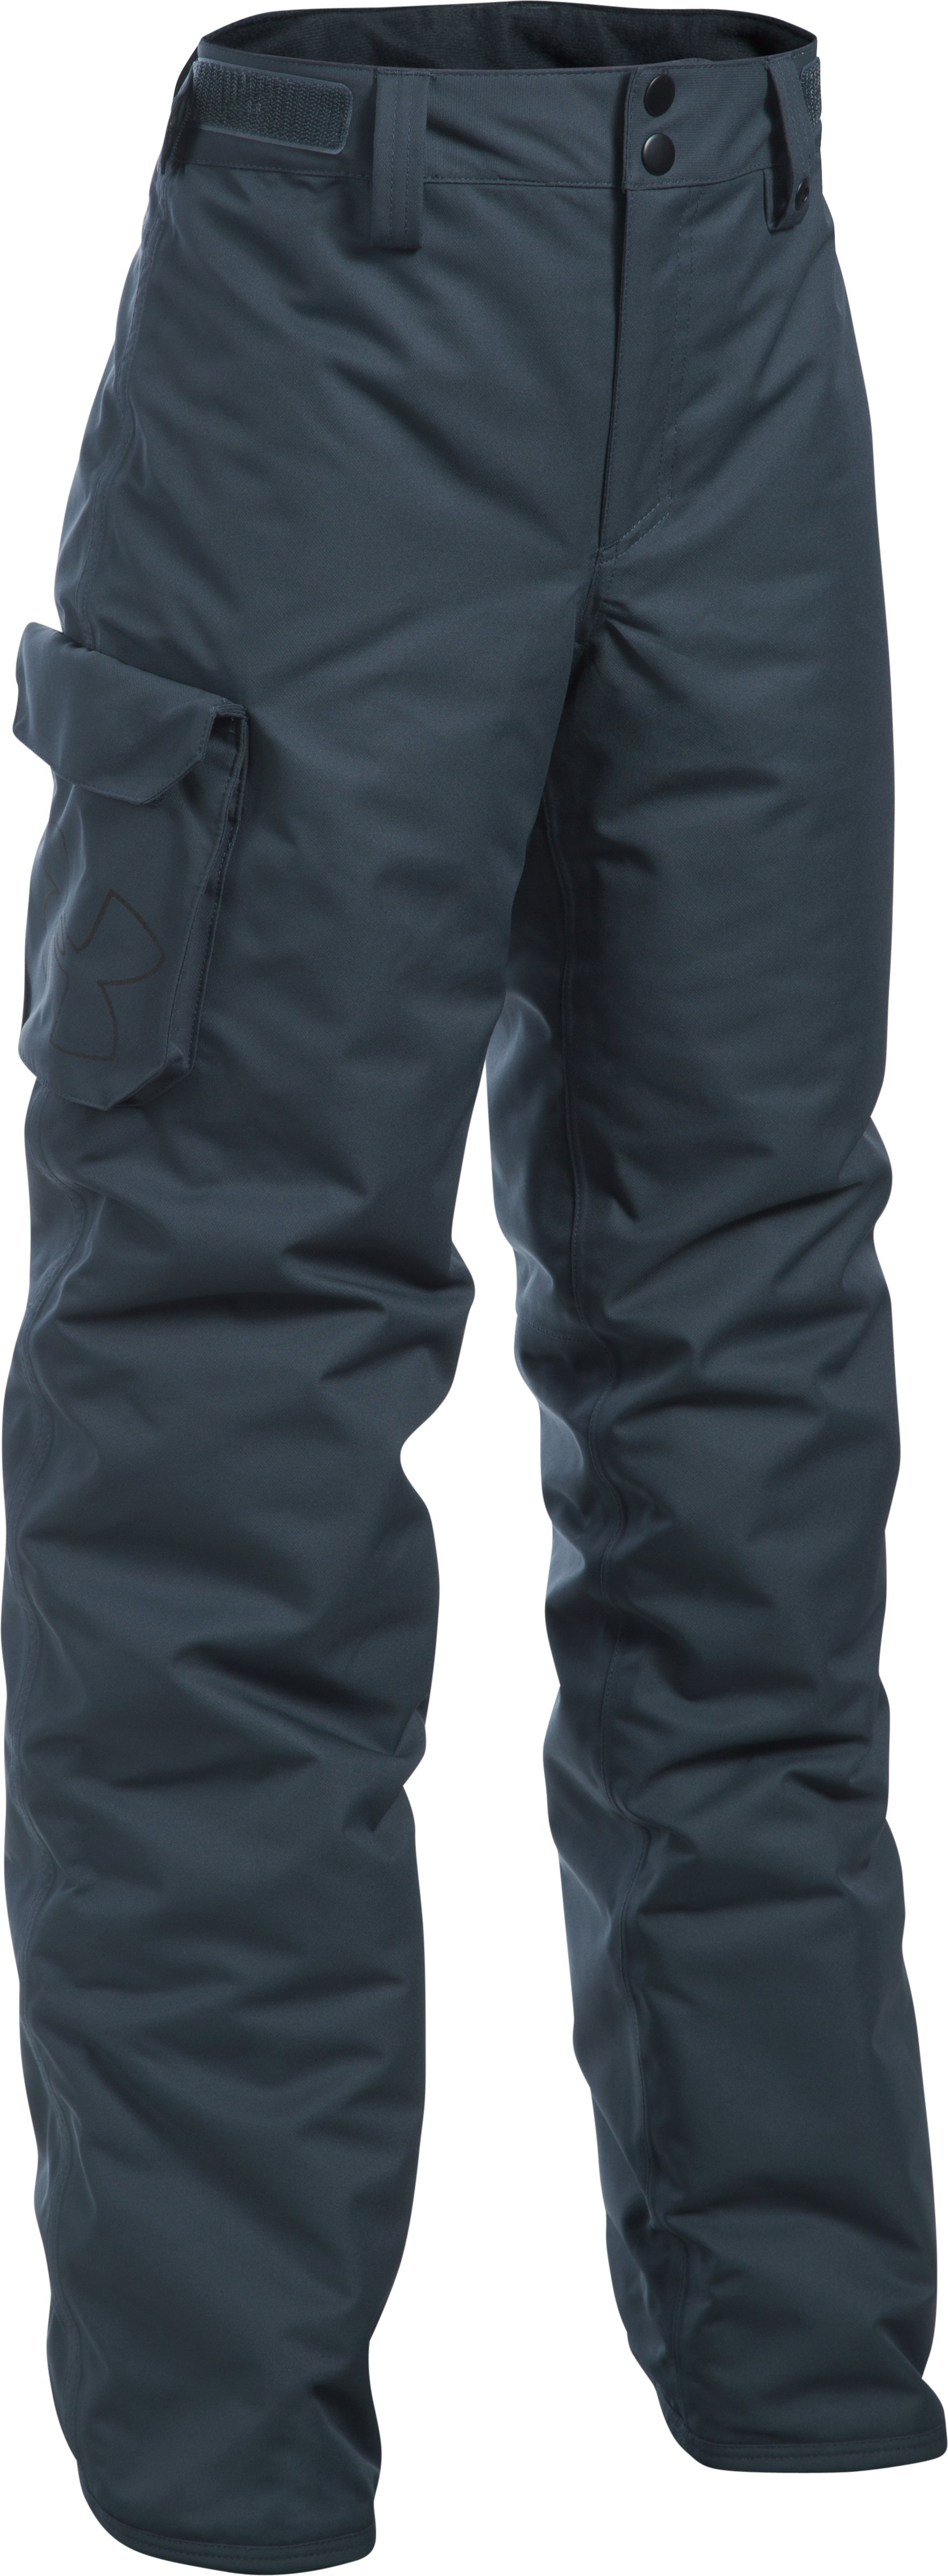 Boys' UA Storm Chutes Insulated Pants, STEALTH GRAY, zoomed image